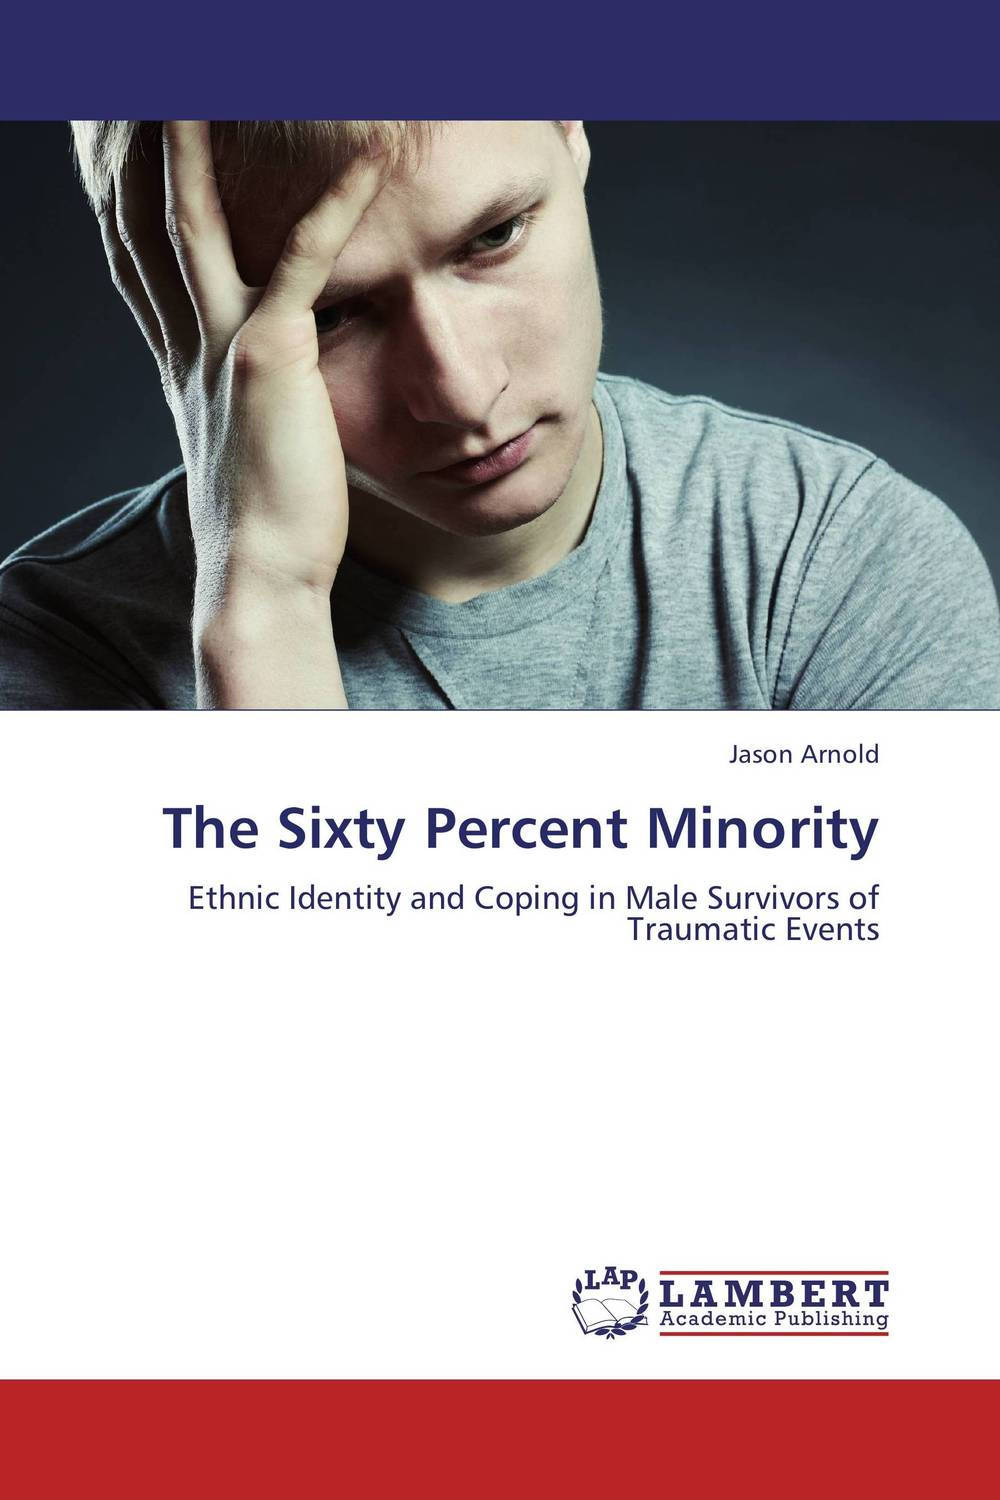 The Sixty Percent Minority post traumatic stress in forensic mental health